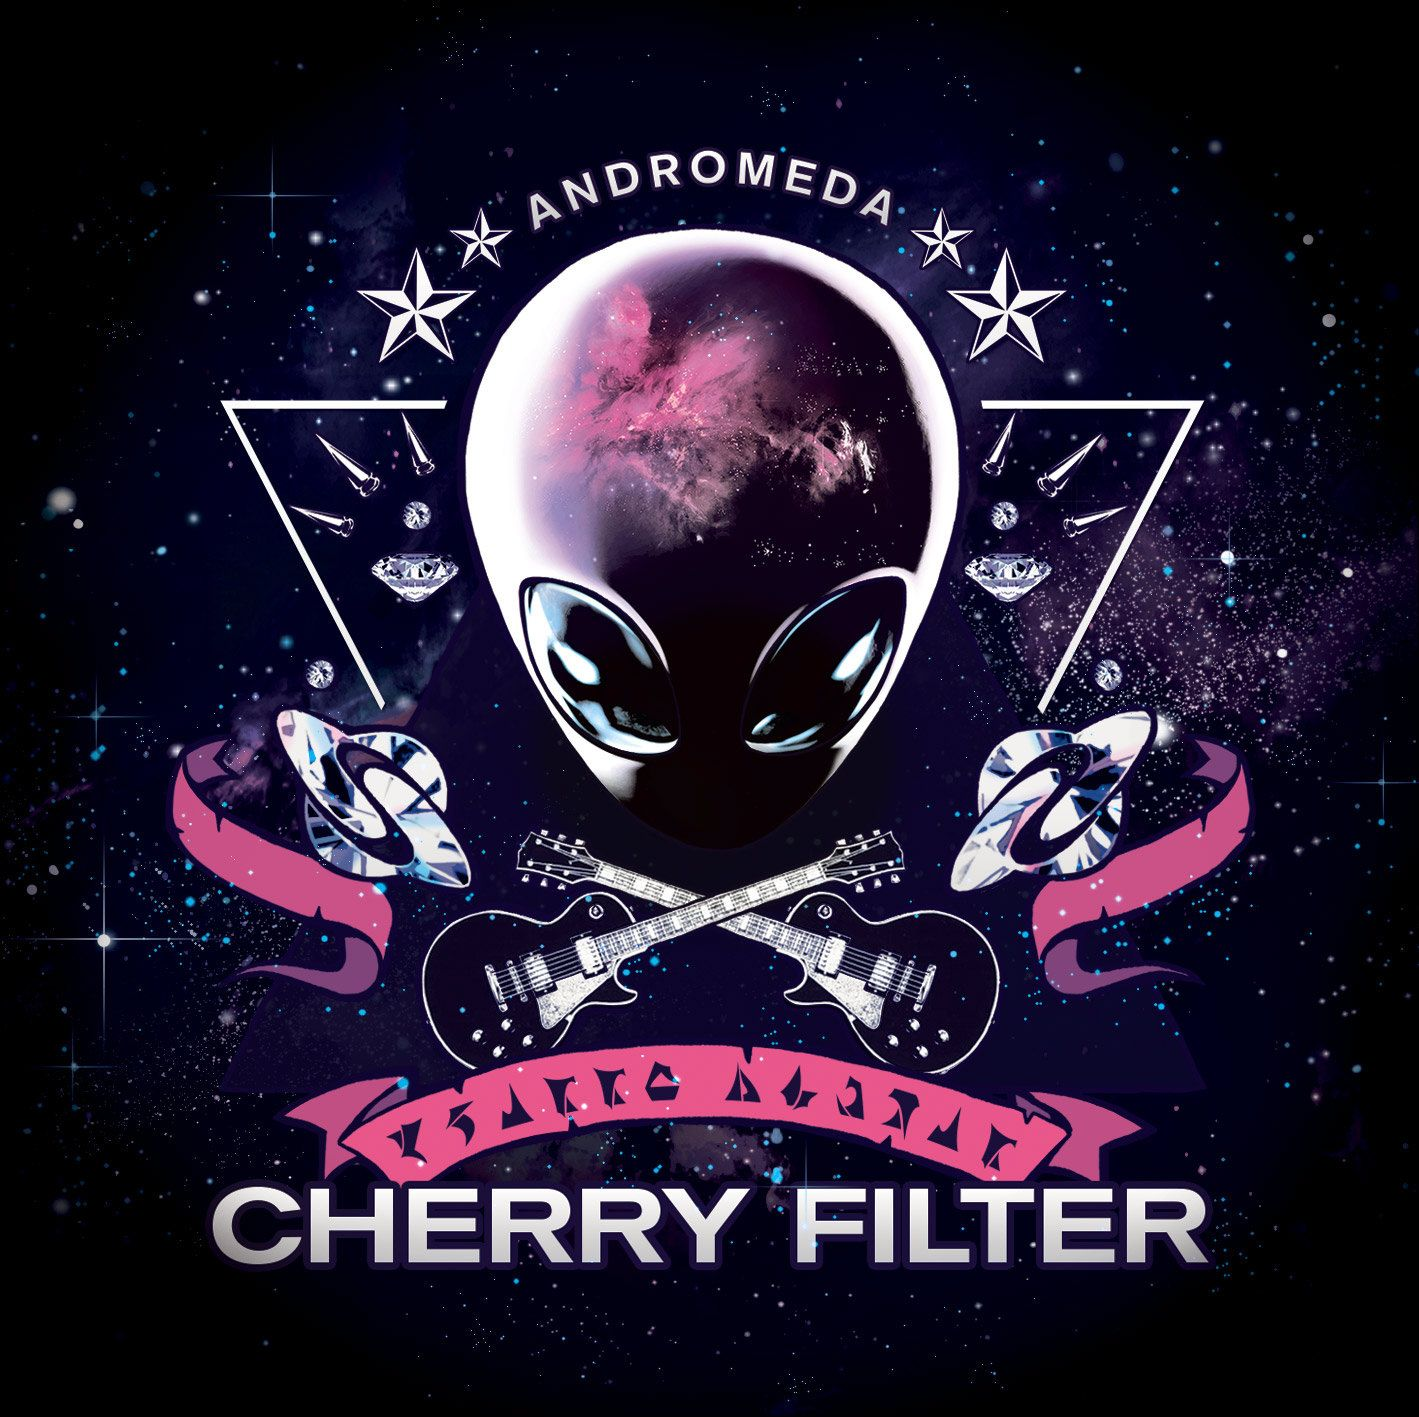 [Single] CHERRY FILTER - ANDROMEDA